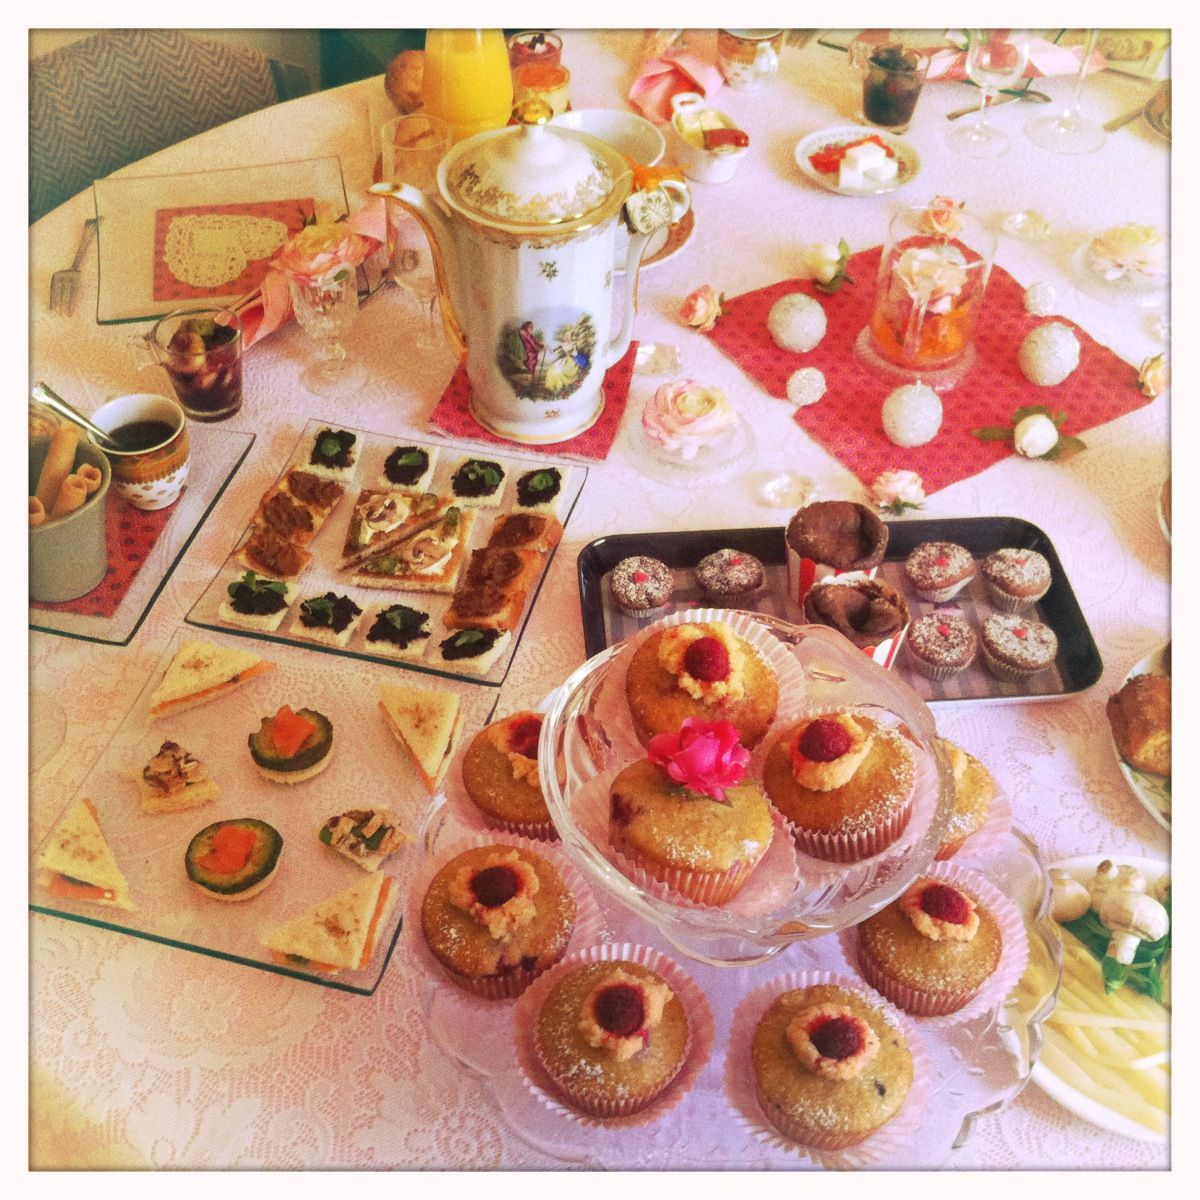 For my 34 years , a sweet and beautiful Tea Party home made by my dear Mum ♥ South west France, tea time lovers ;-)